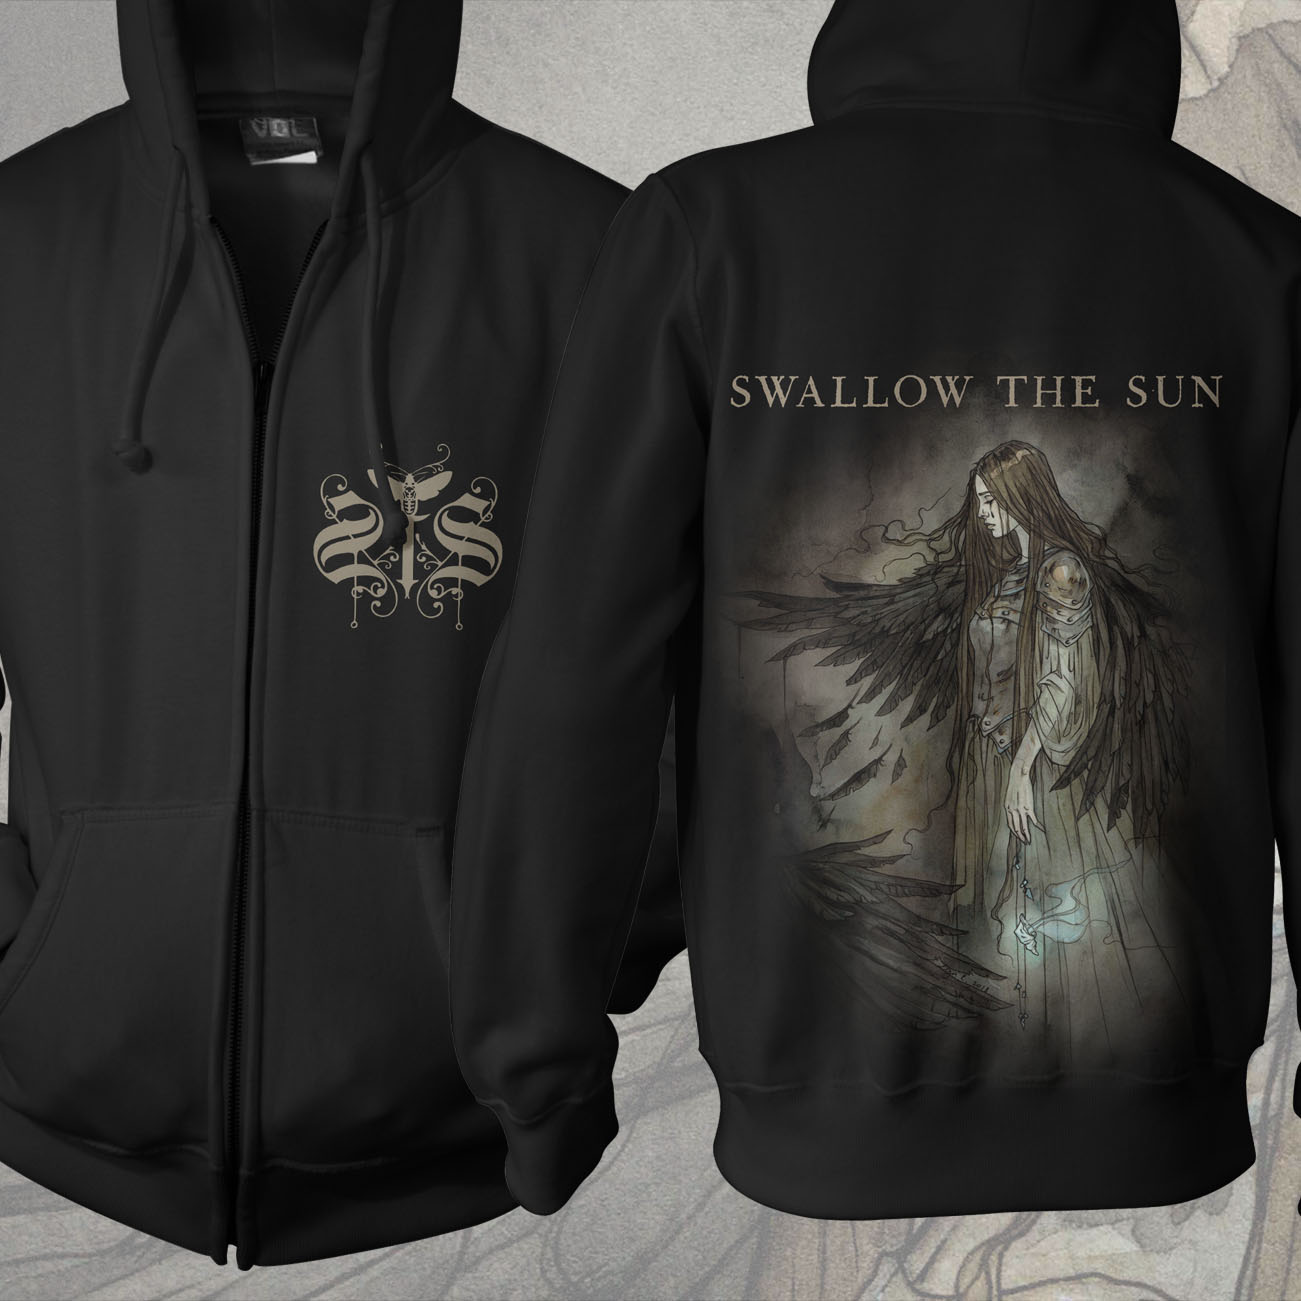 Swallow The Sun - 'Wings' Zip Hoodie - Swallow The Sun